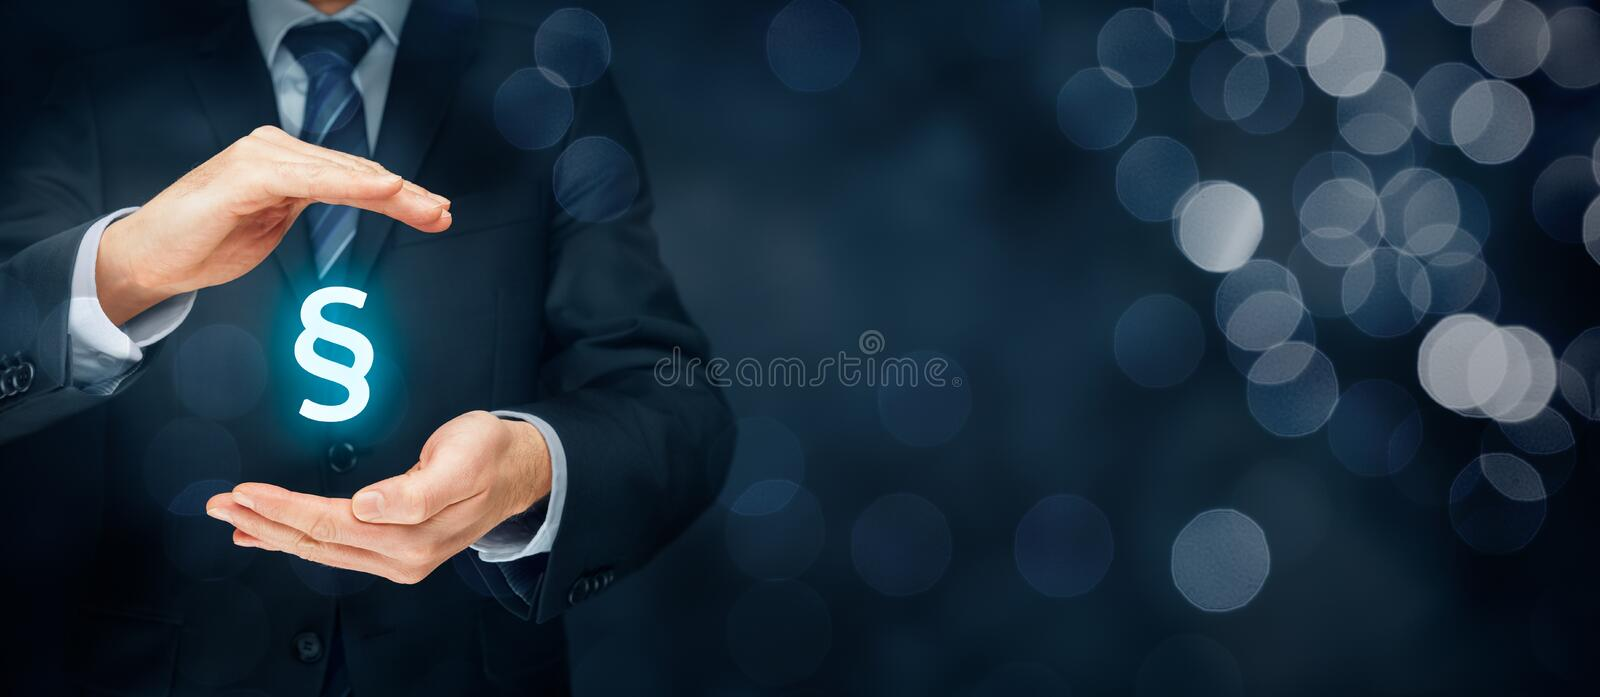 Lawyer protect rights royalty free stock photo